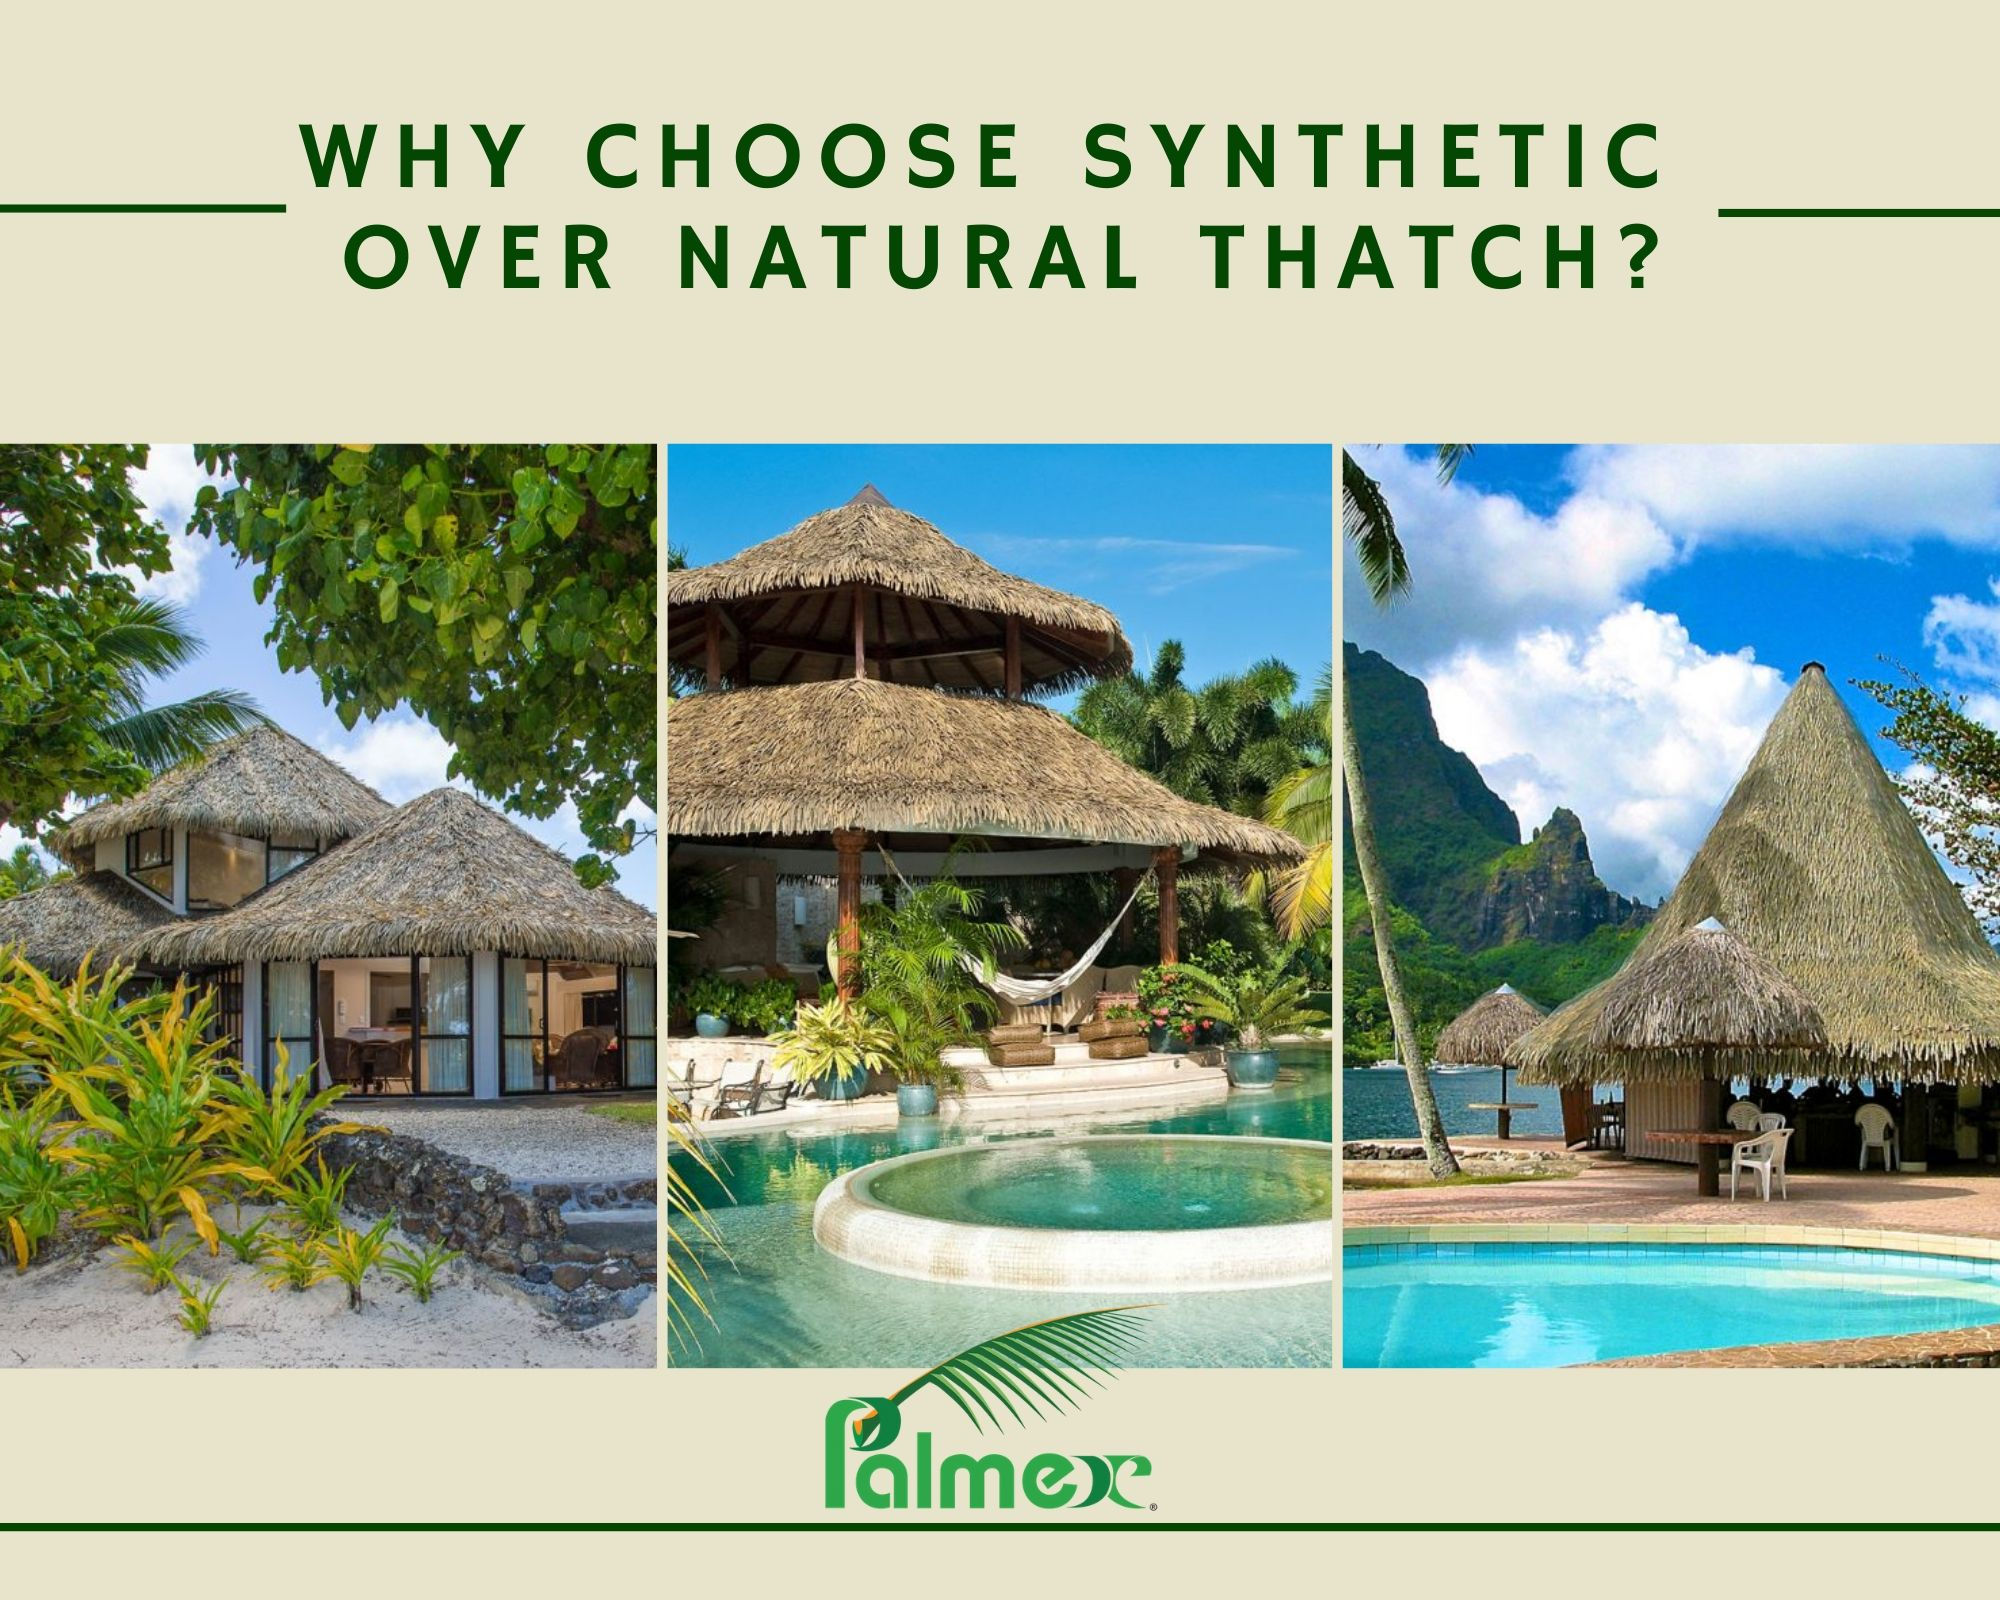 Why choose synthetic over natural thatch